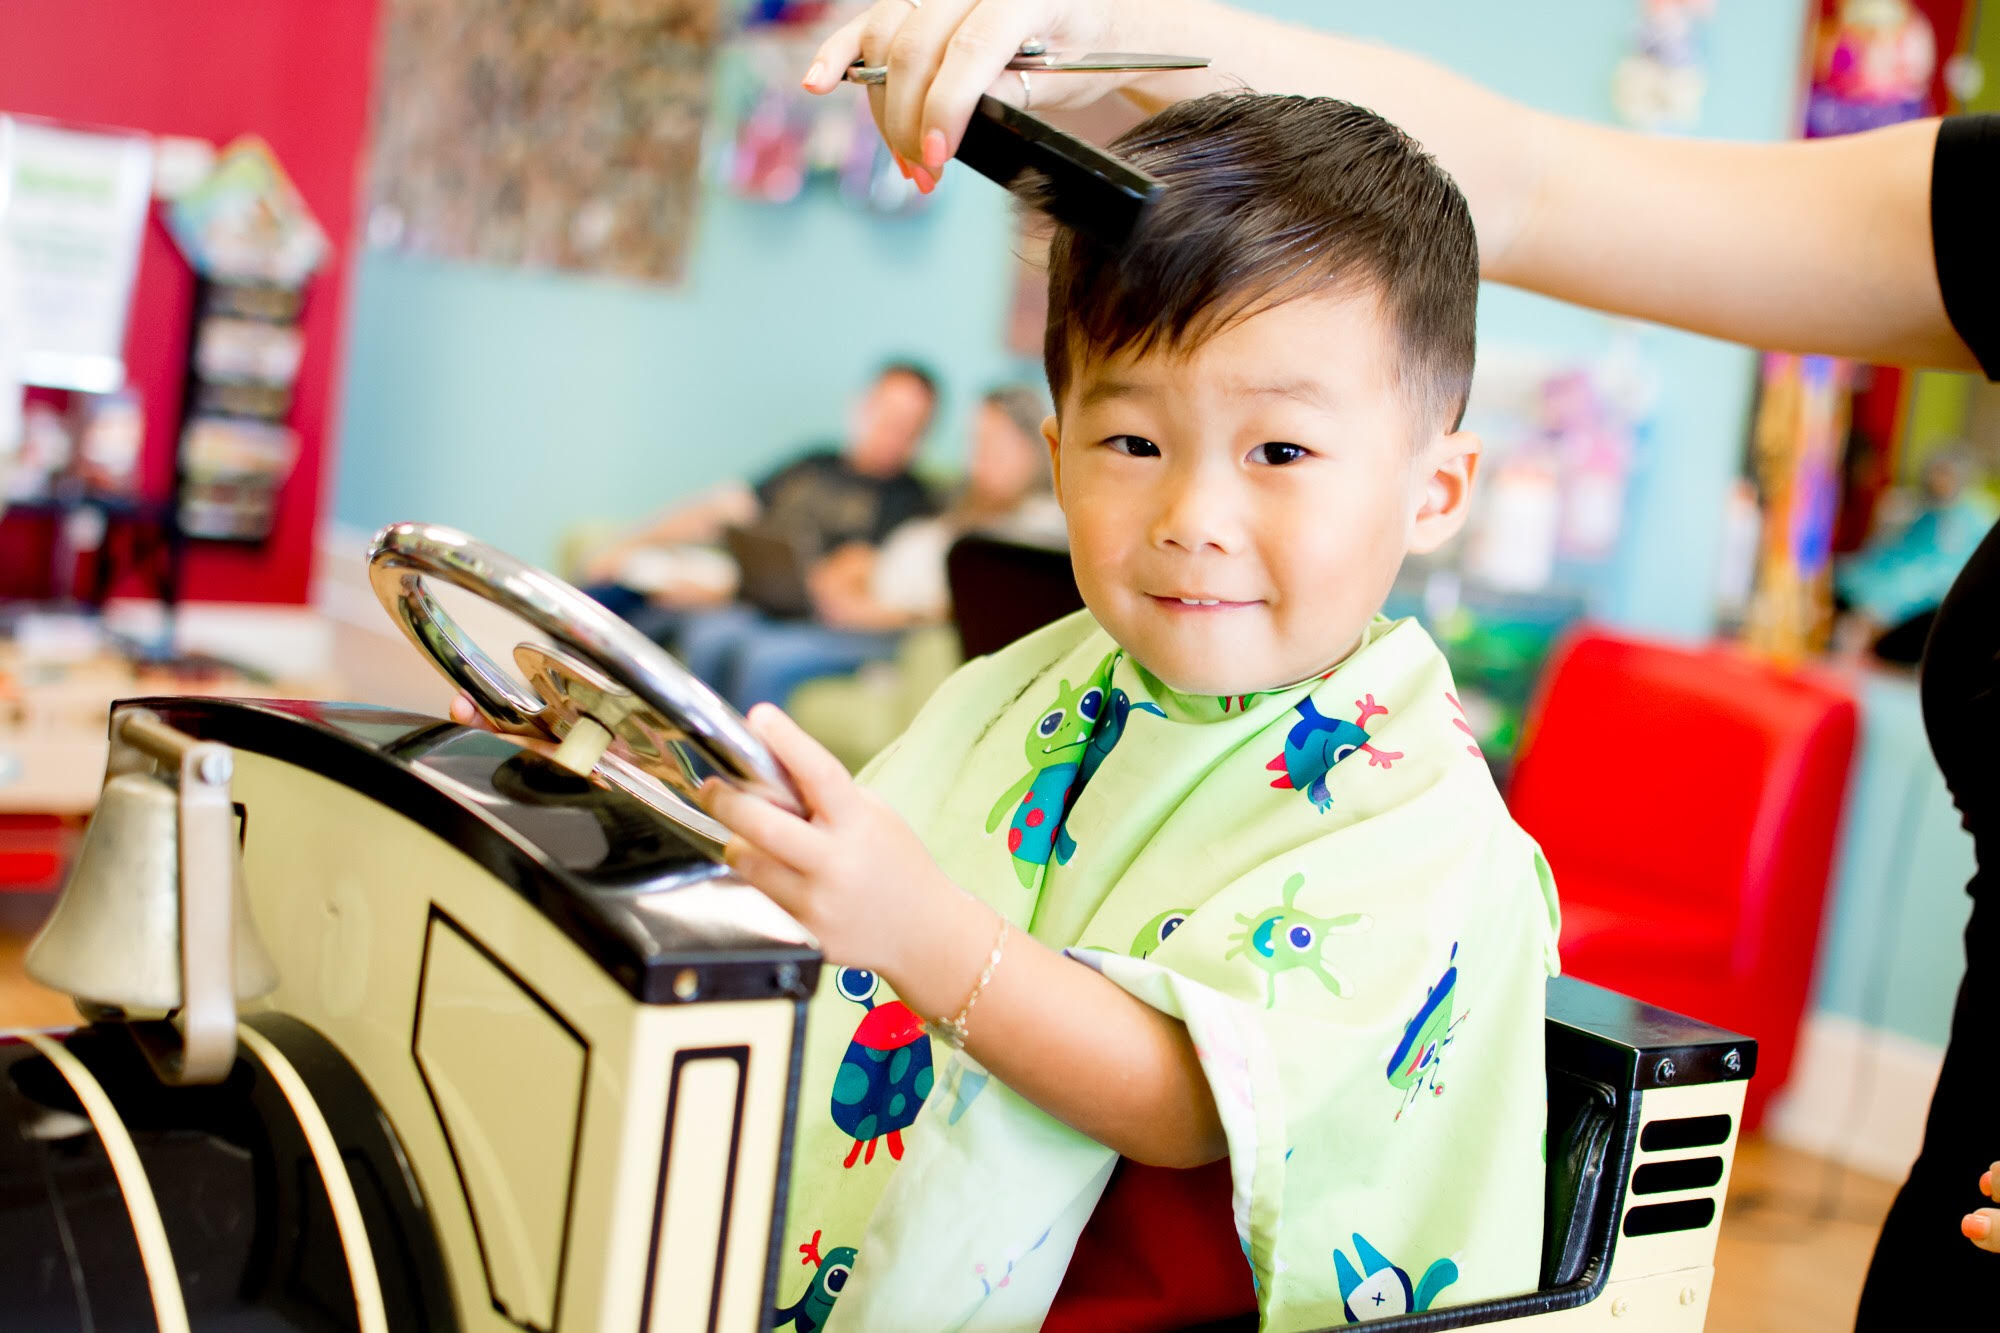 Pigtails & Crewcuts: Haircuts for Kids - West Cobb image 1